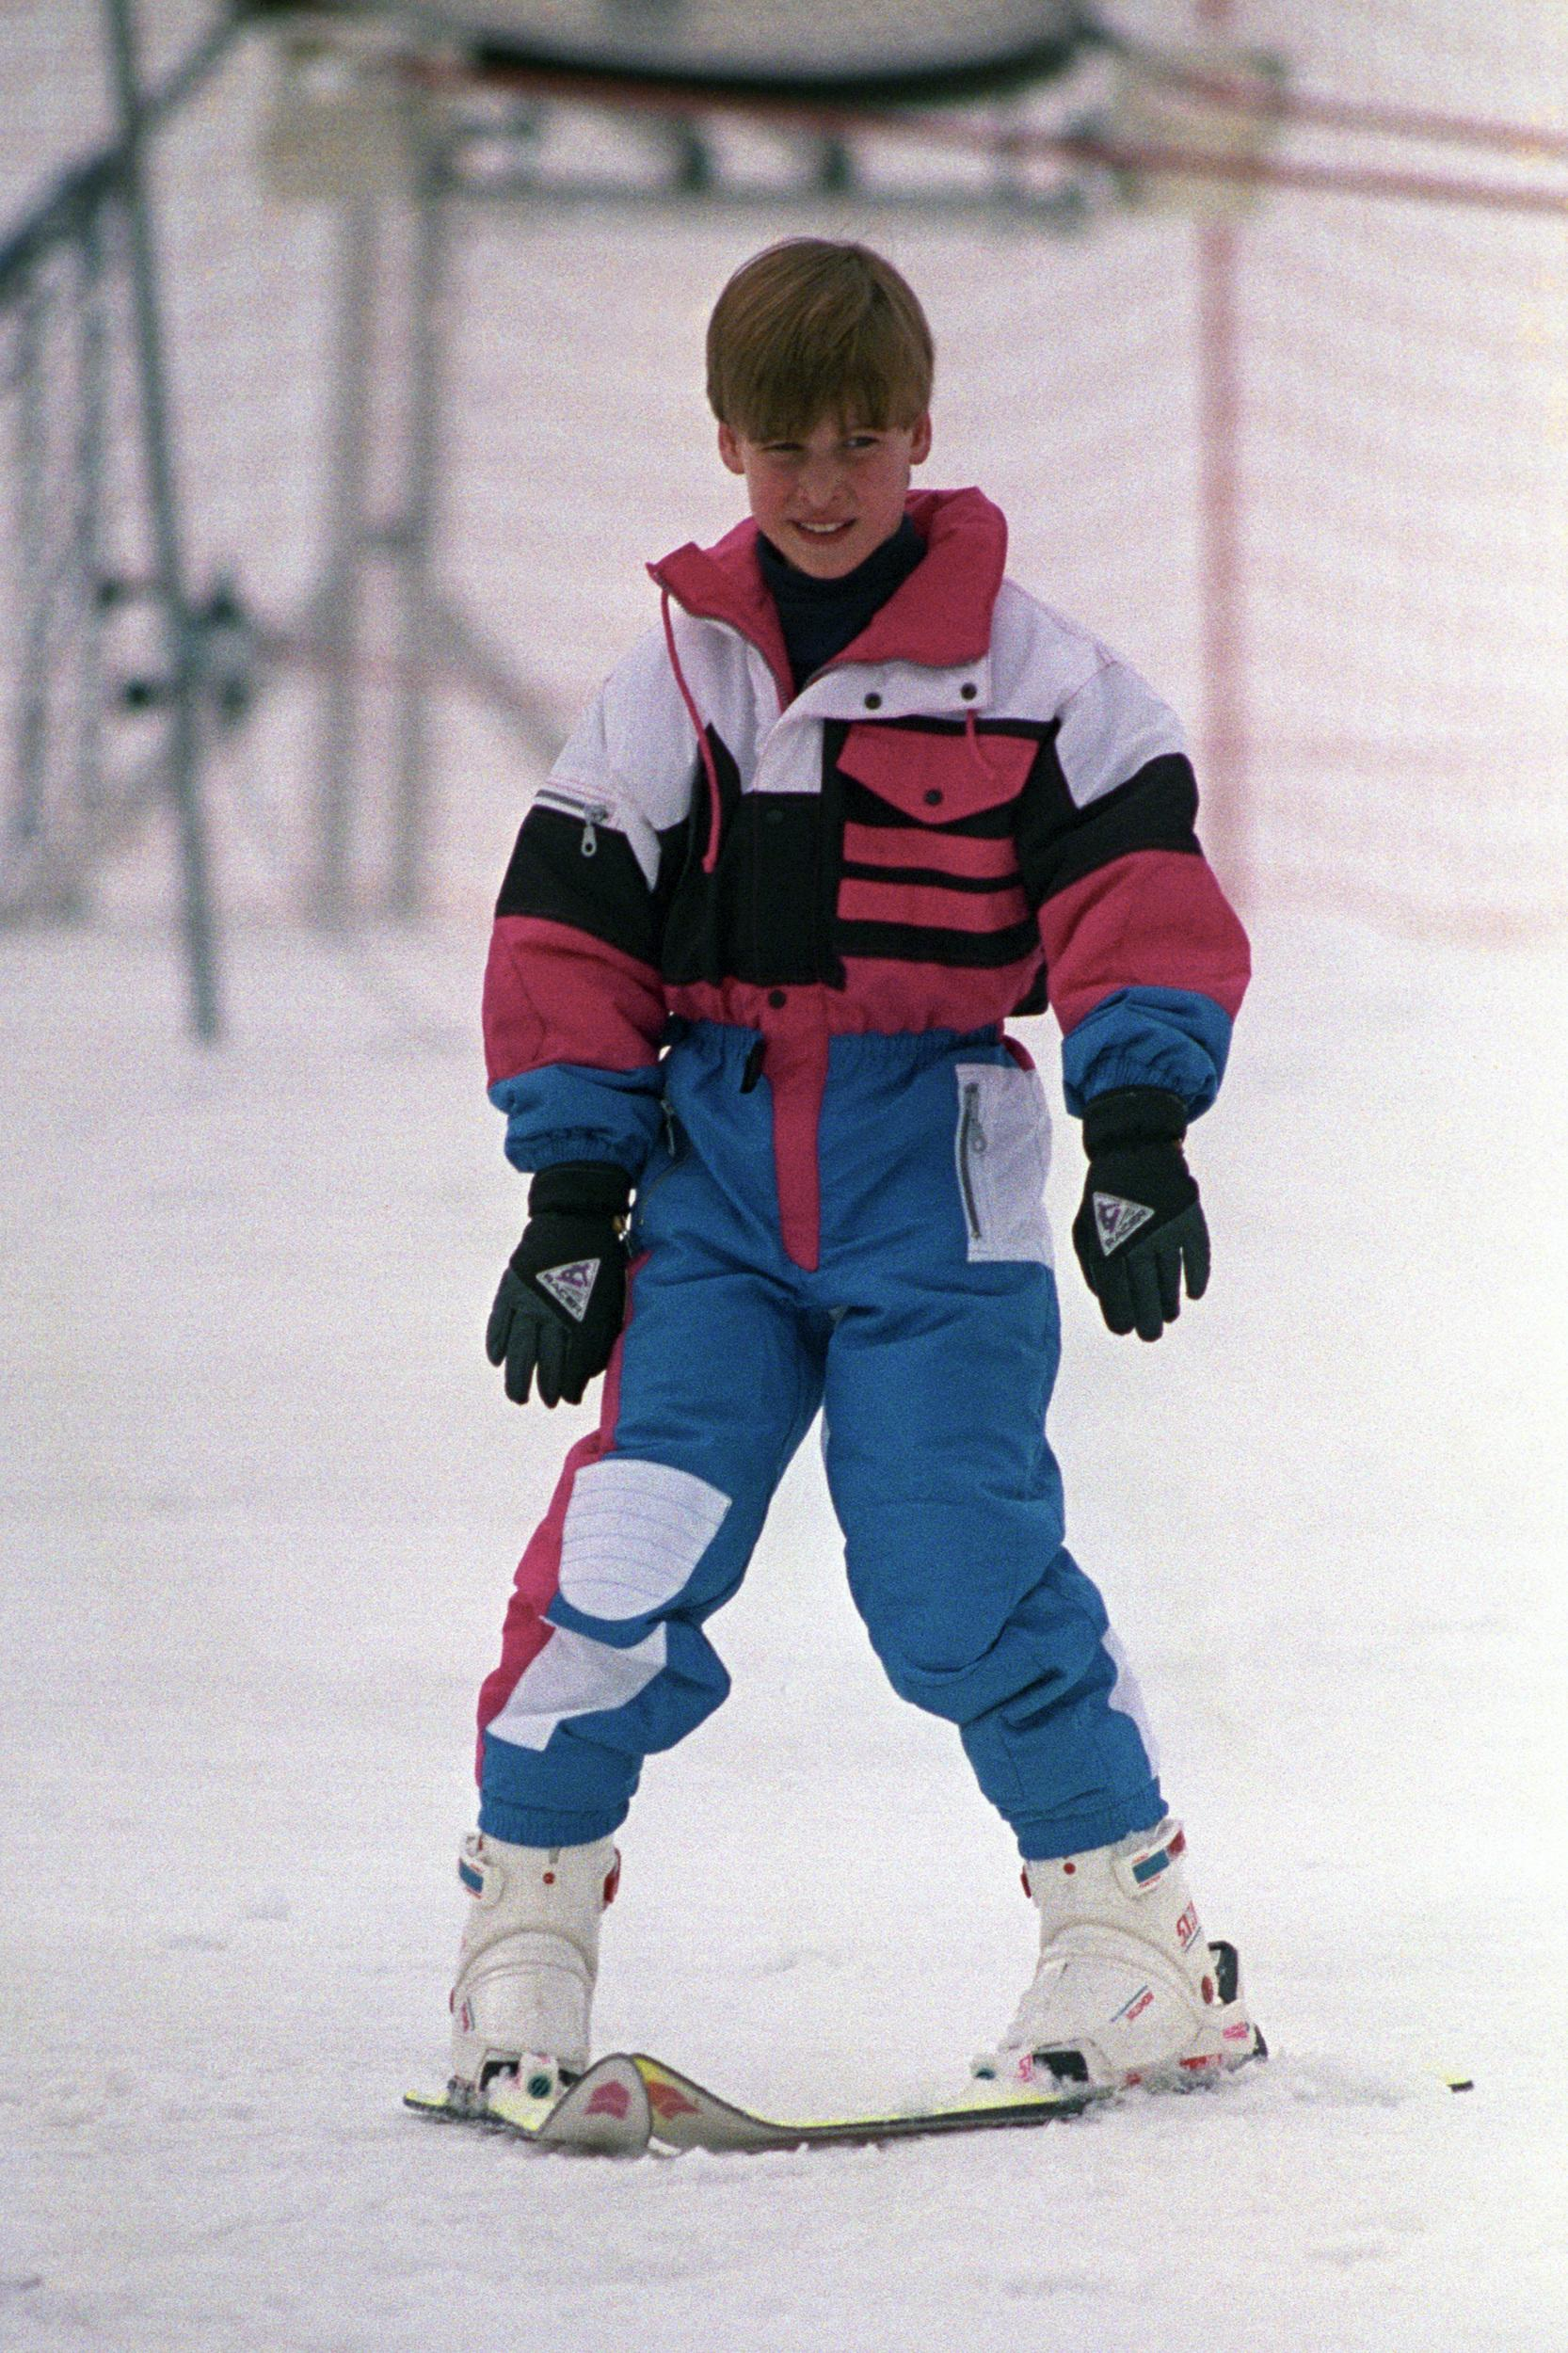 Prince William on the nursery slopes at Lech, Austria, during a holiday with his mother the Princess of Wales and brother Prince Harry.   (Photo by Martin Keene - PA Images/PA Images via Getty Images)